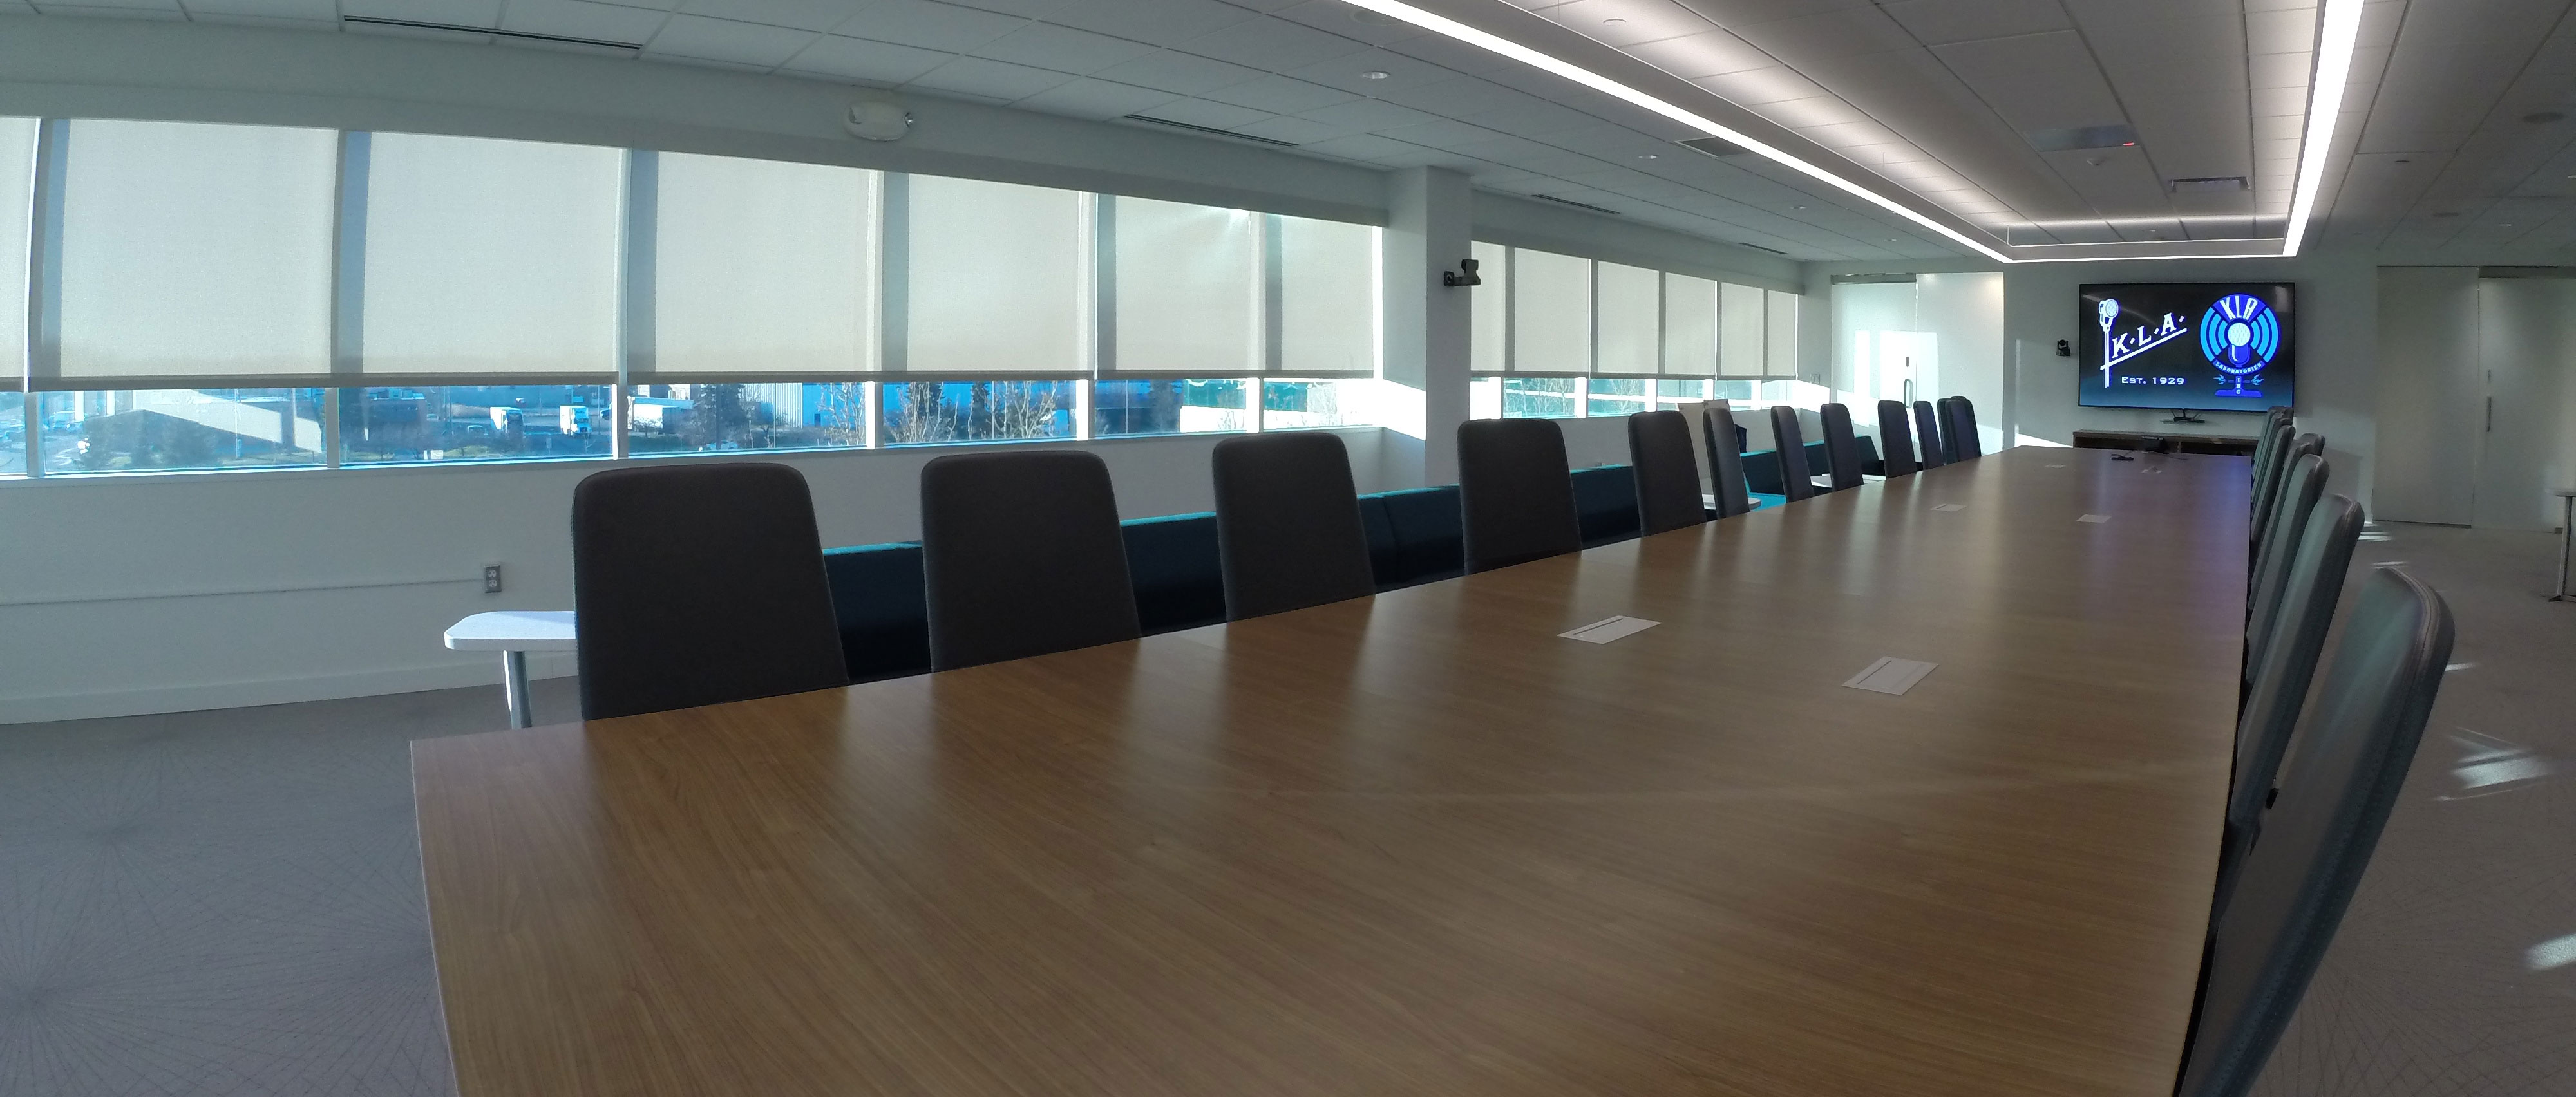 hap-conference-room